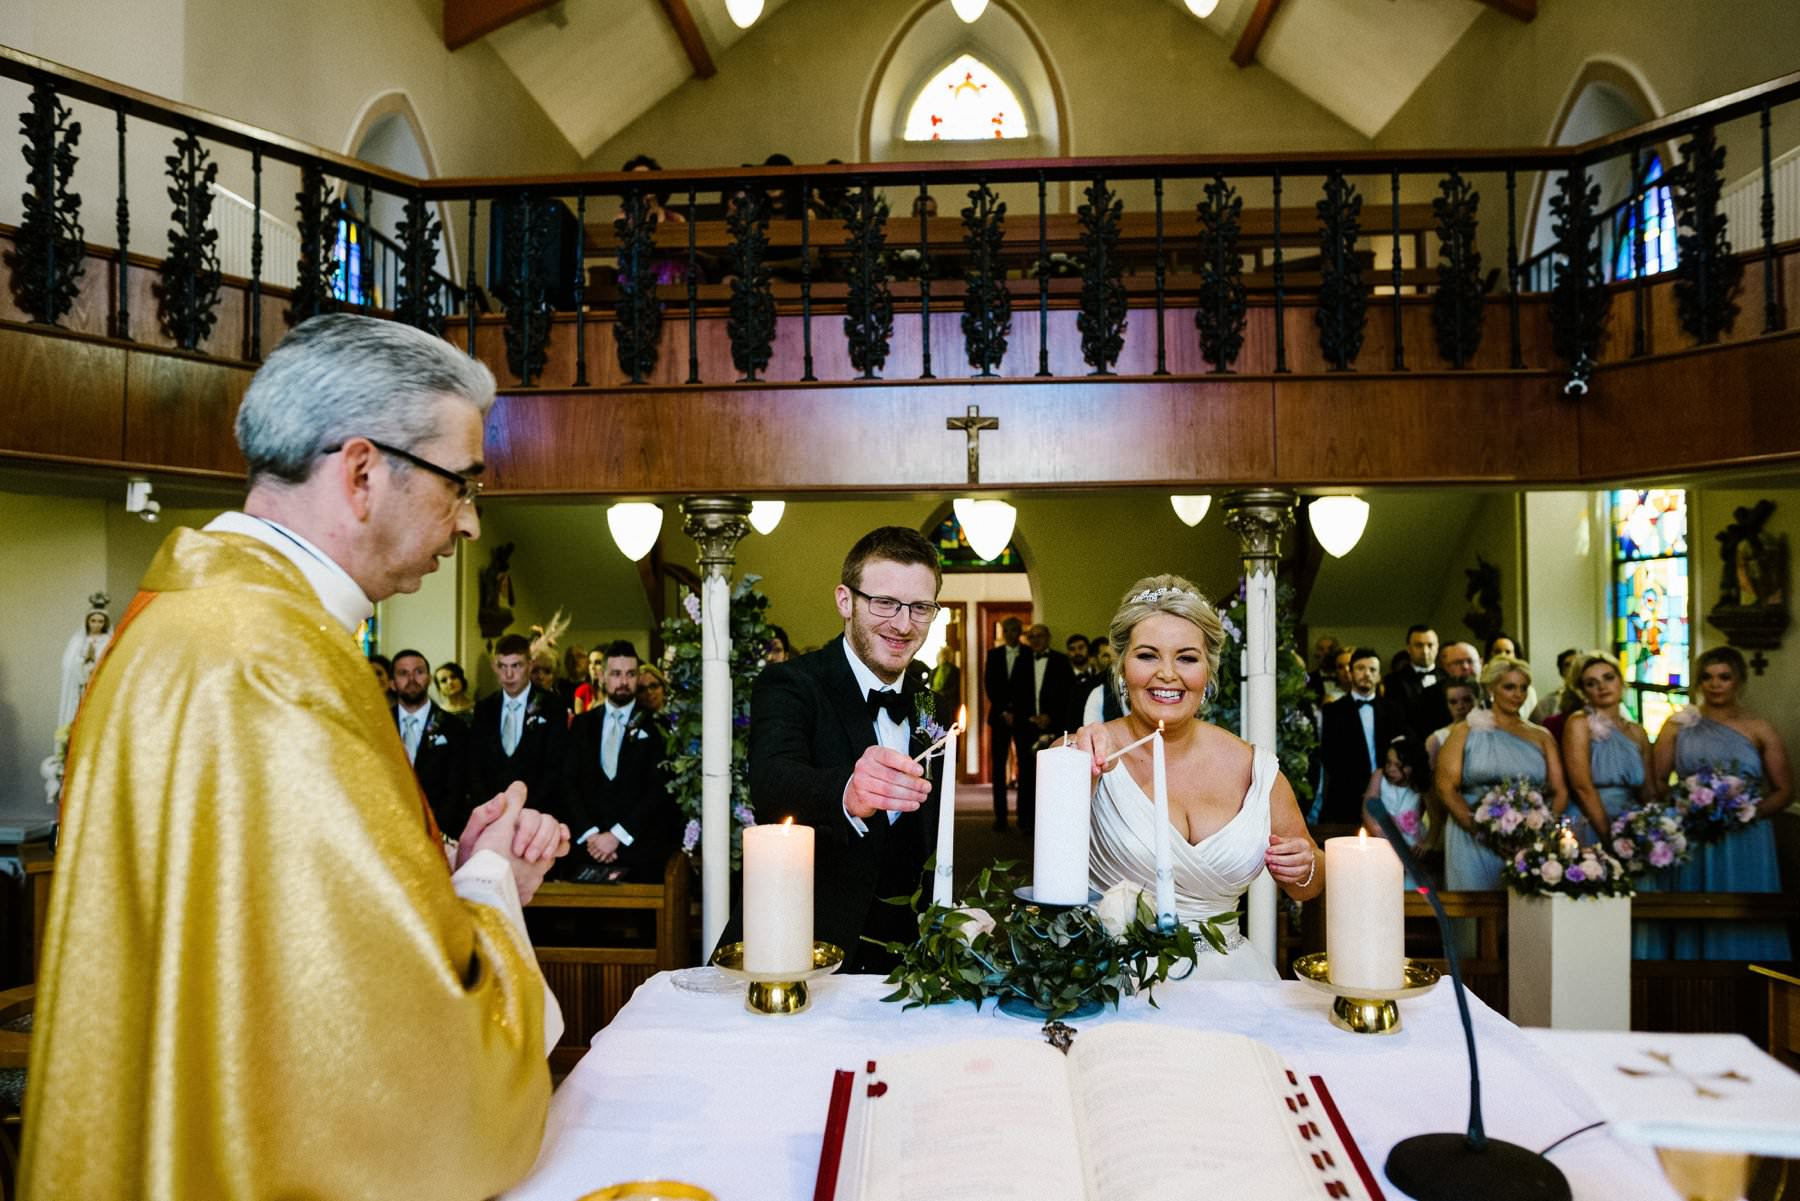 groom and bride light ceremonial candles in dungannon